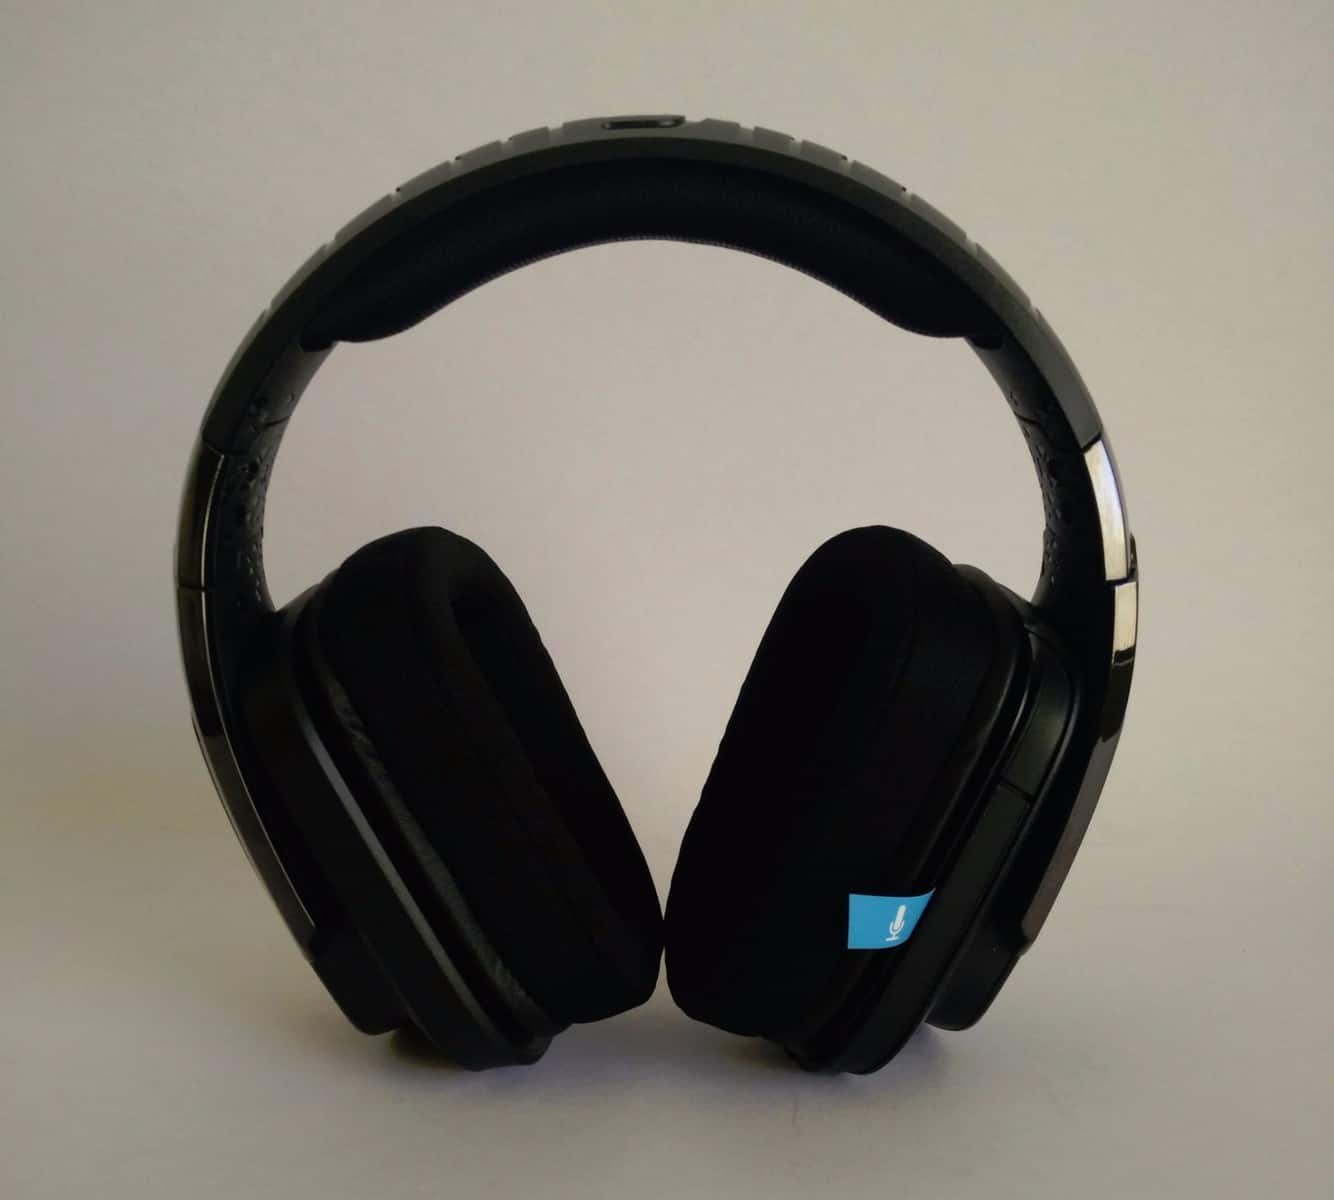 Logitech G633 Artemis Spectrum Headset Review The Streaming Blog